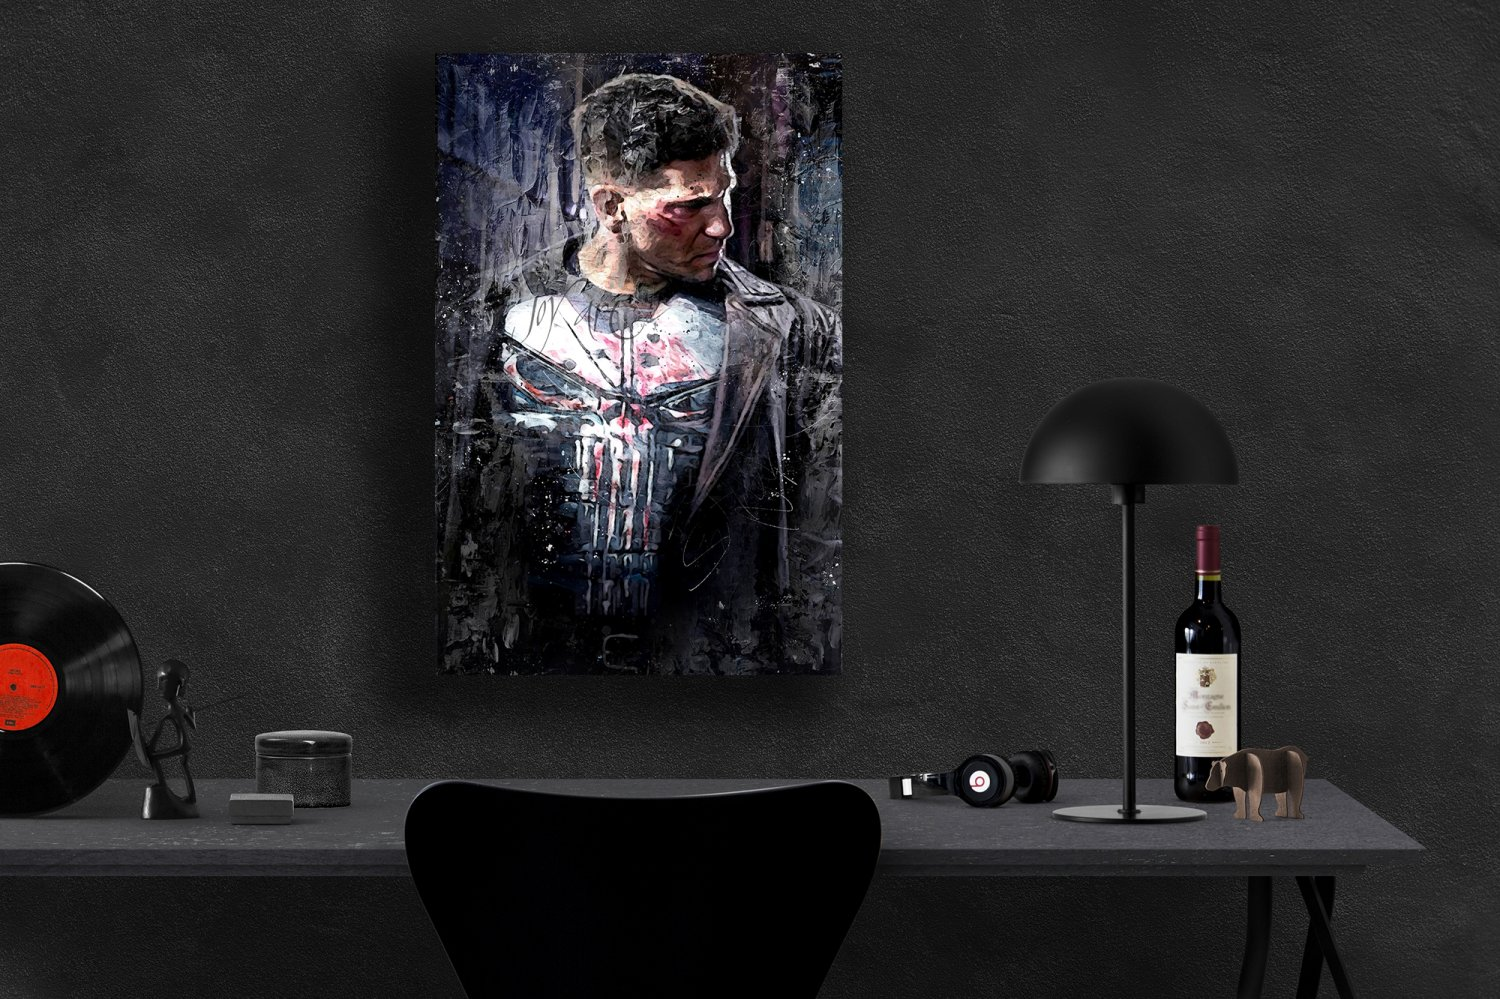 The Punisher, Frank Castle, Jon Bernthal   13x19 inches Poster Print